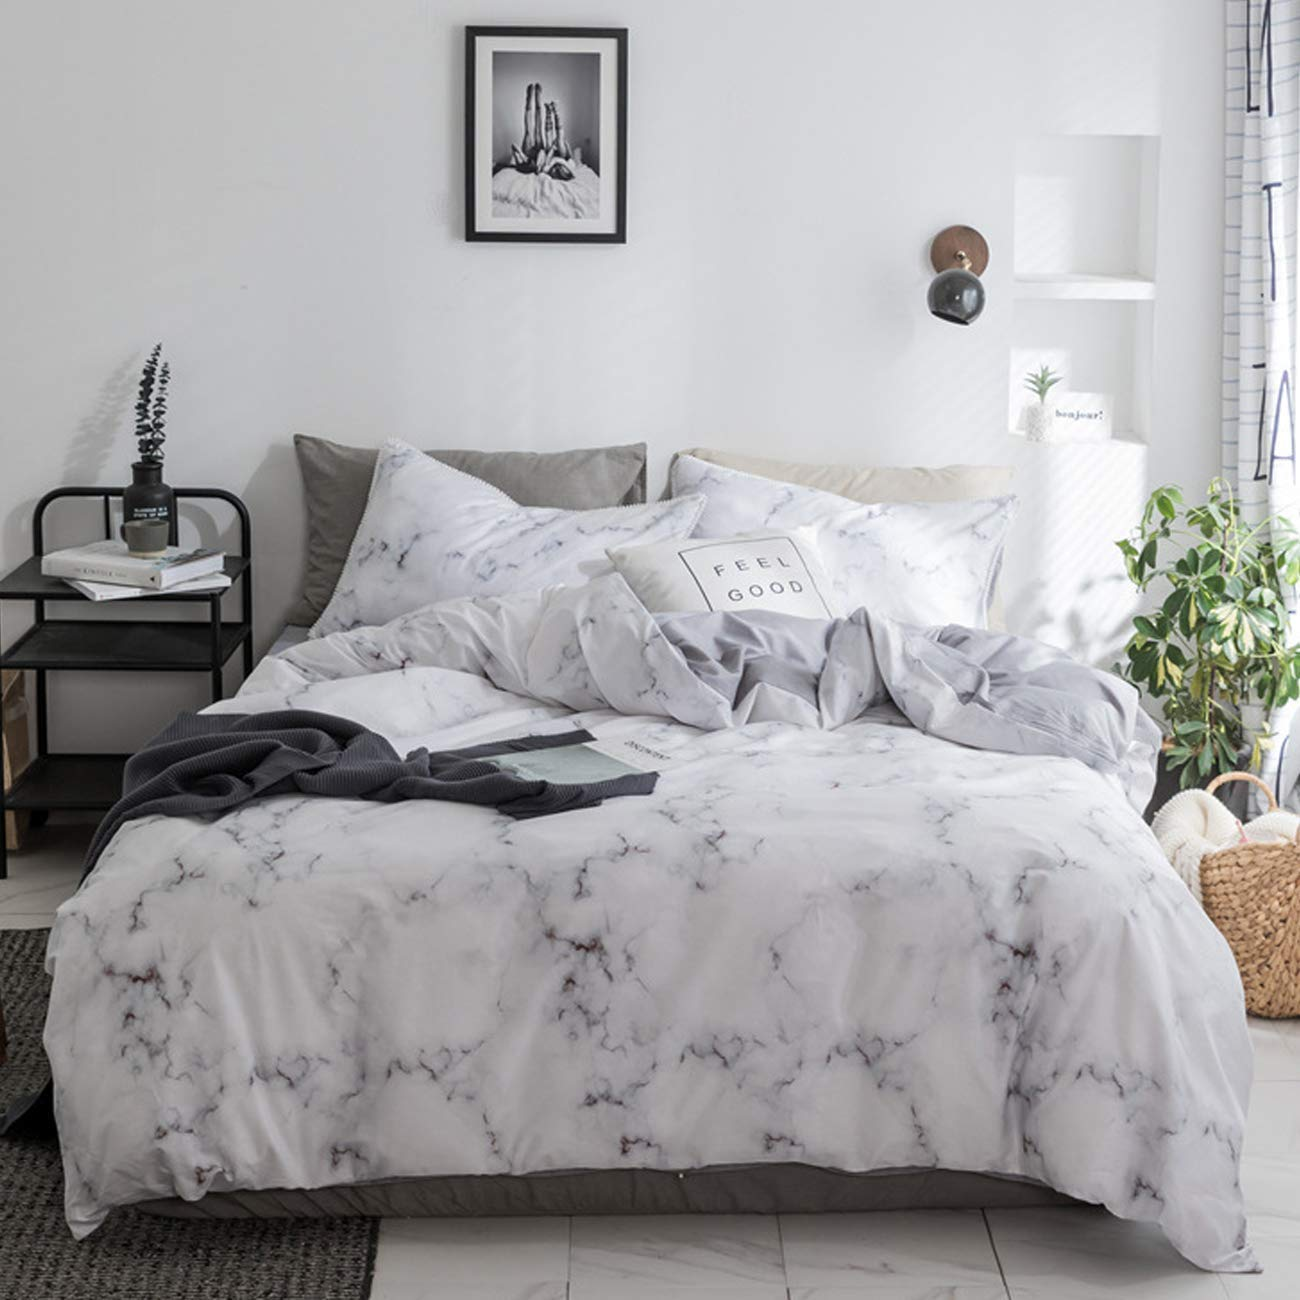 PromQueen Comforter Cover Set White Marble Pattern Bedding Sets 1500 Thread Count Egyptian Quality 3 Piece Cover Set Simple Style Queen